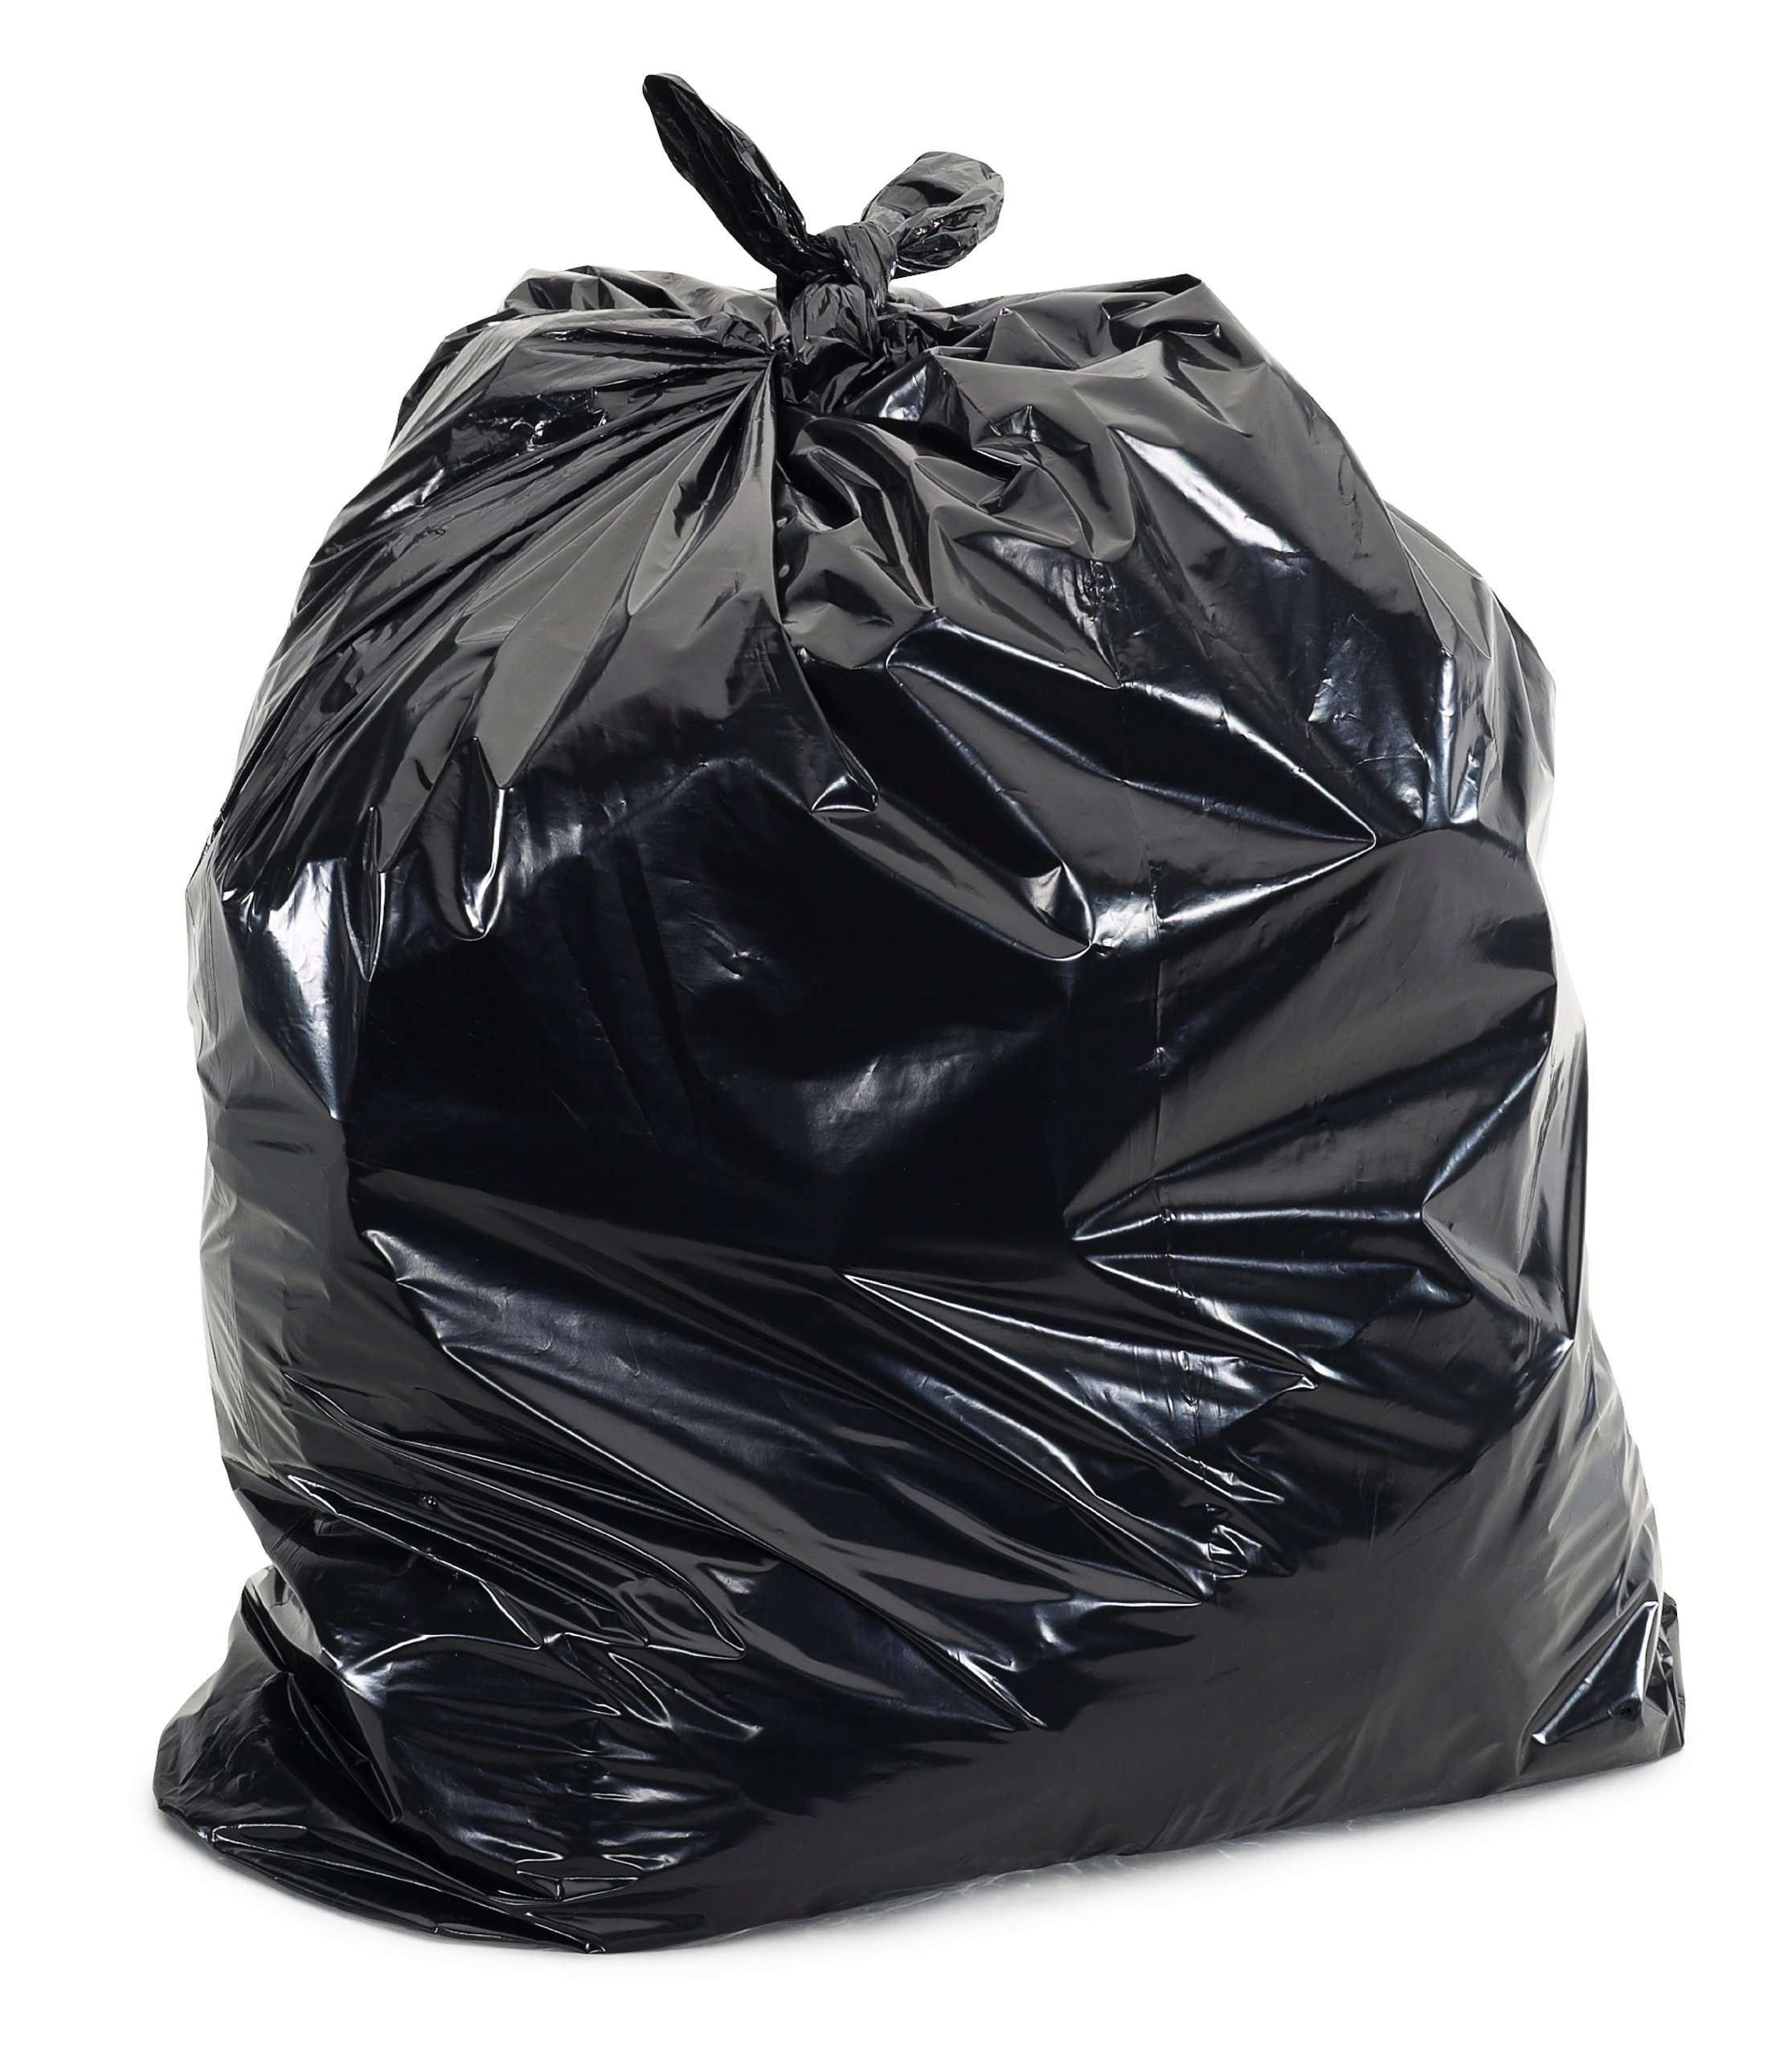 Plasticplace Black 33 Gallon Trash Bags, Contractor Bags, 33x39, 2.3 Mil, 100/Case